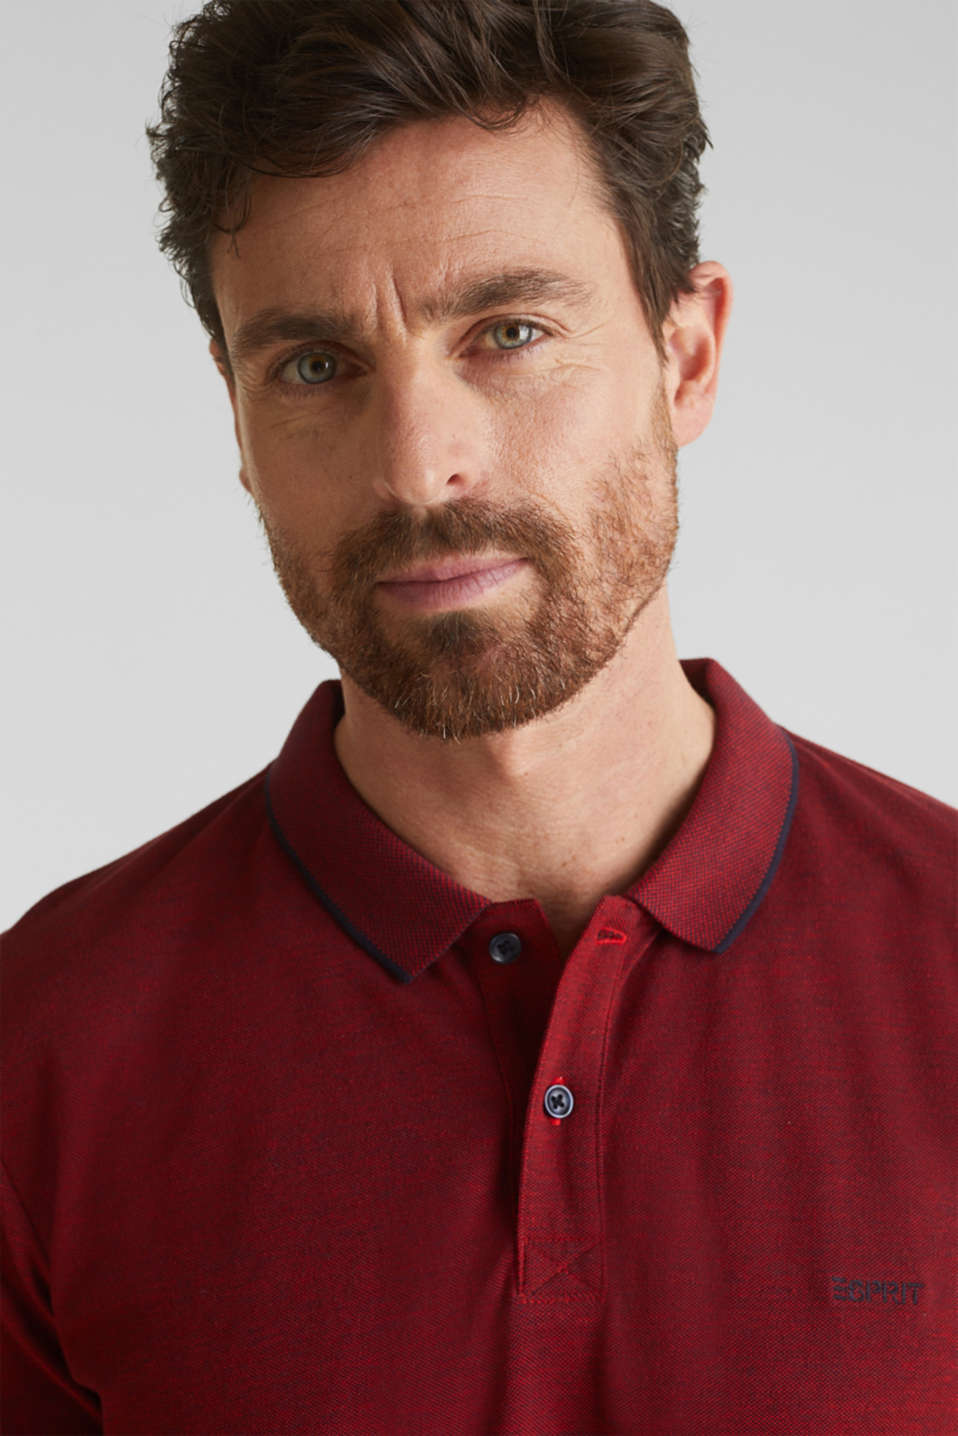 Piqué polo shirt, 100% organic cotton, RED, detail image number 1